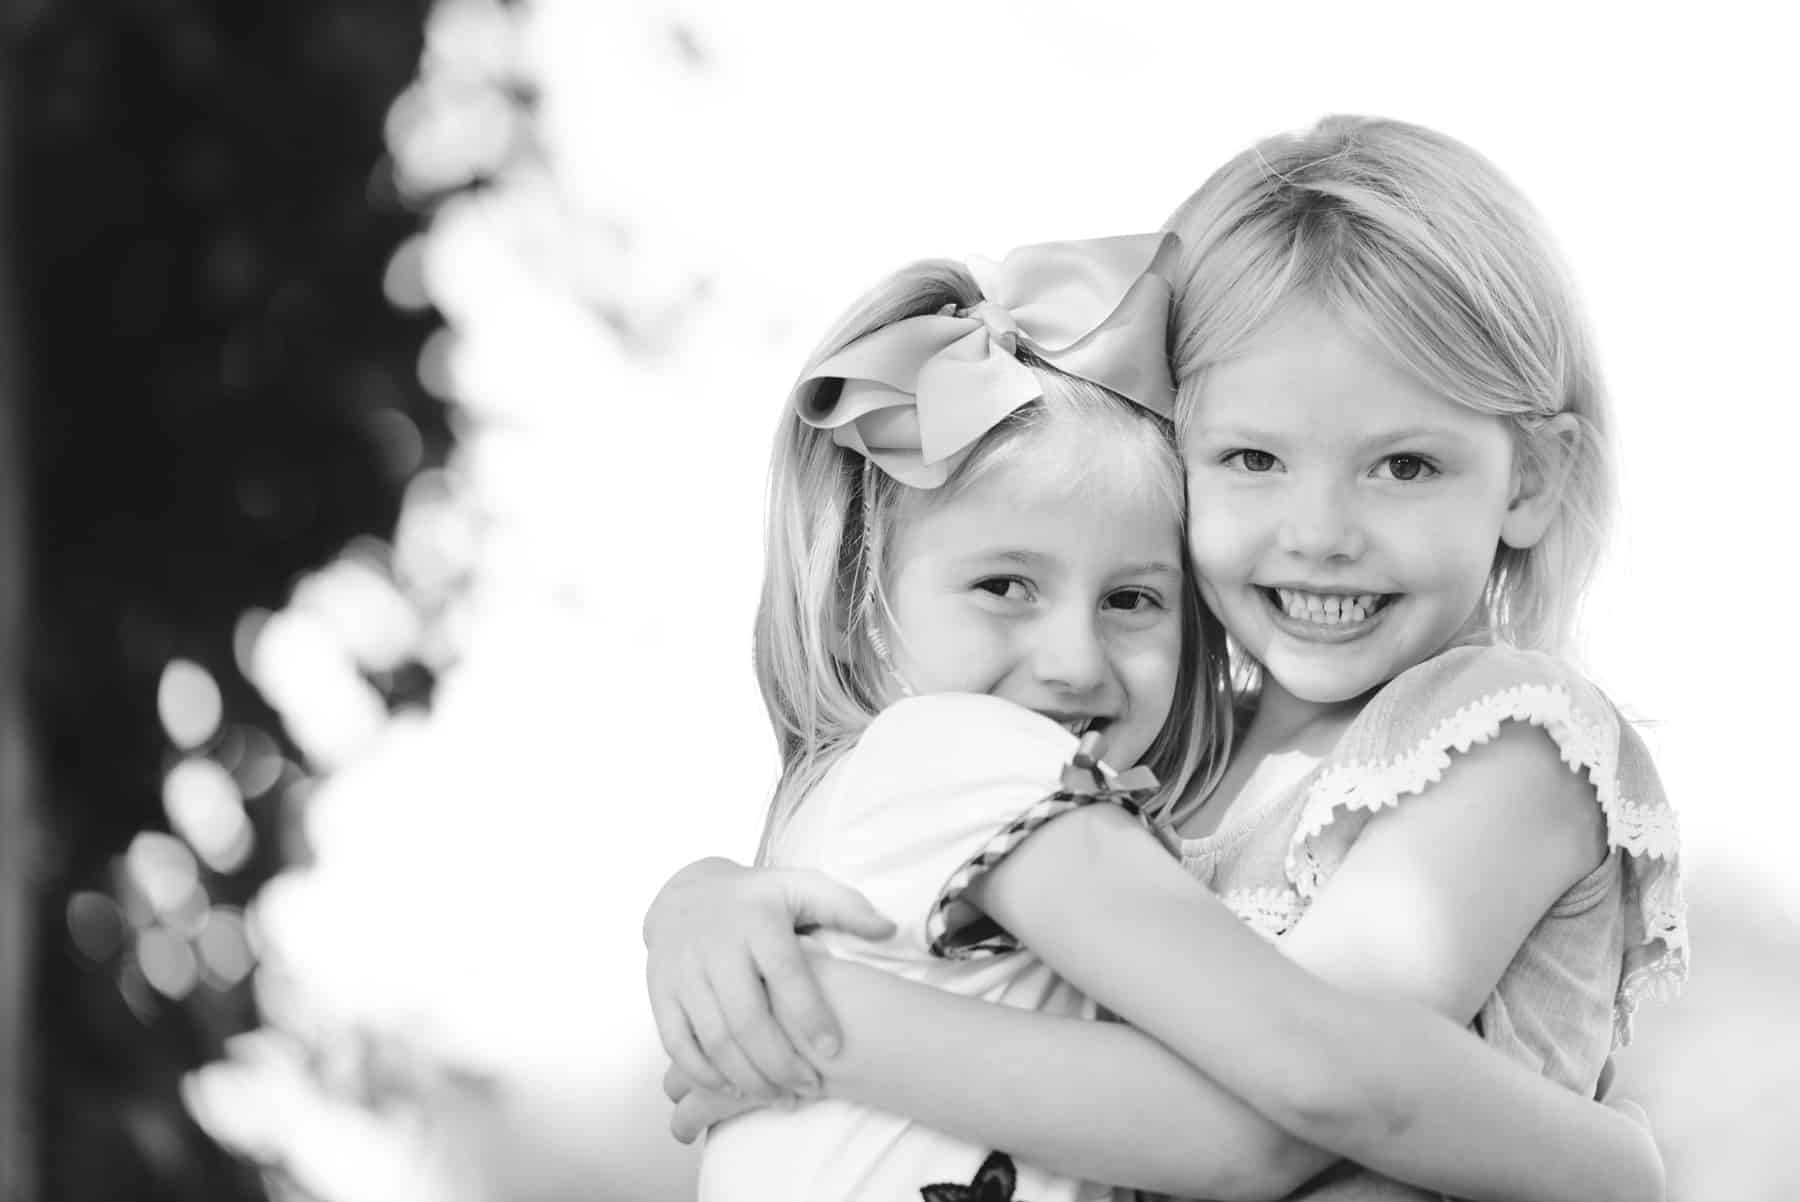 Cute little girls portrait